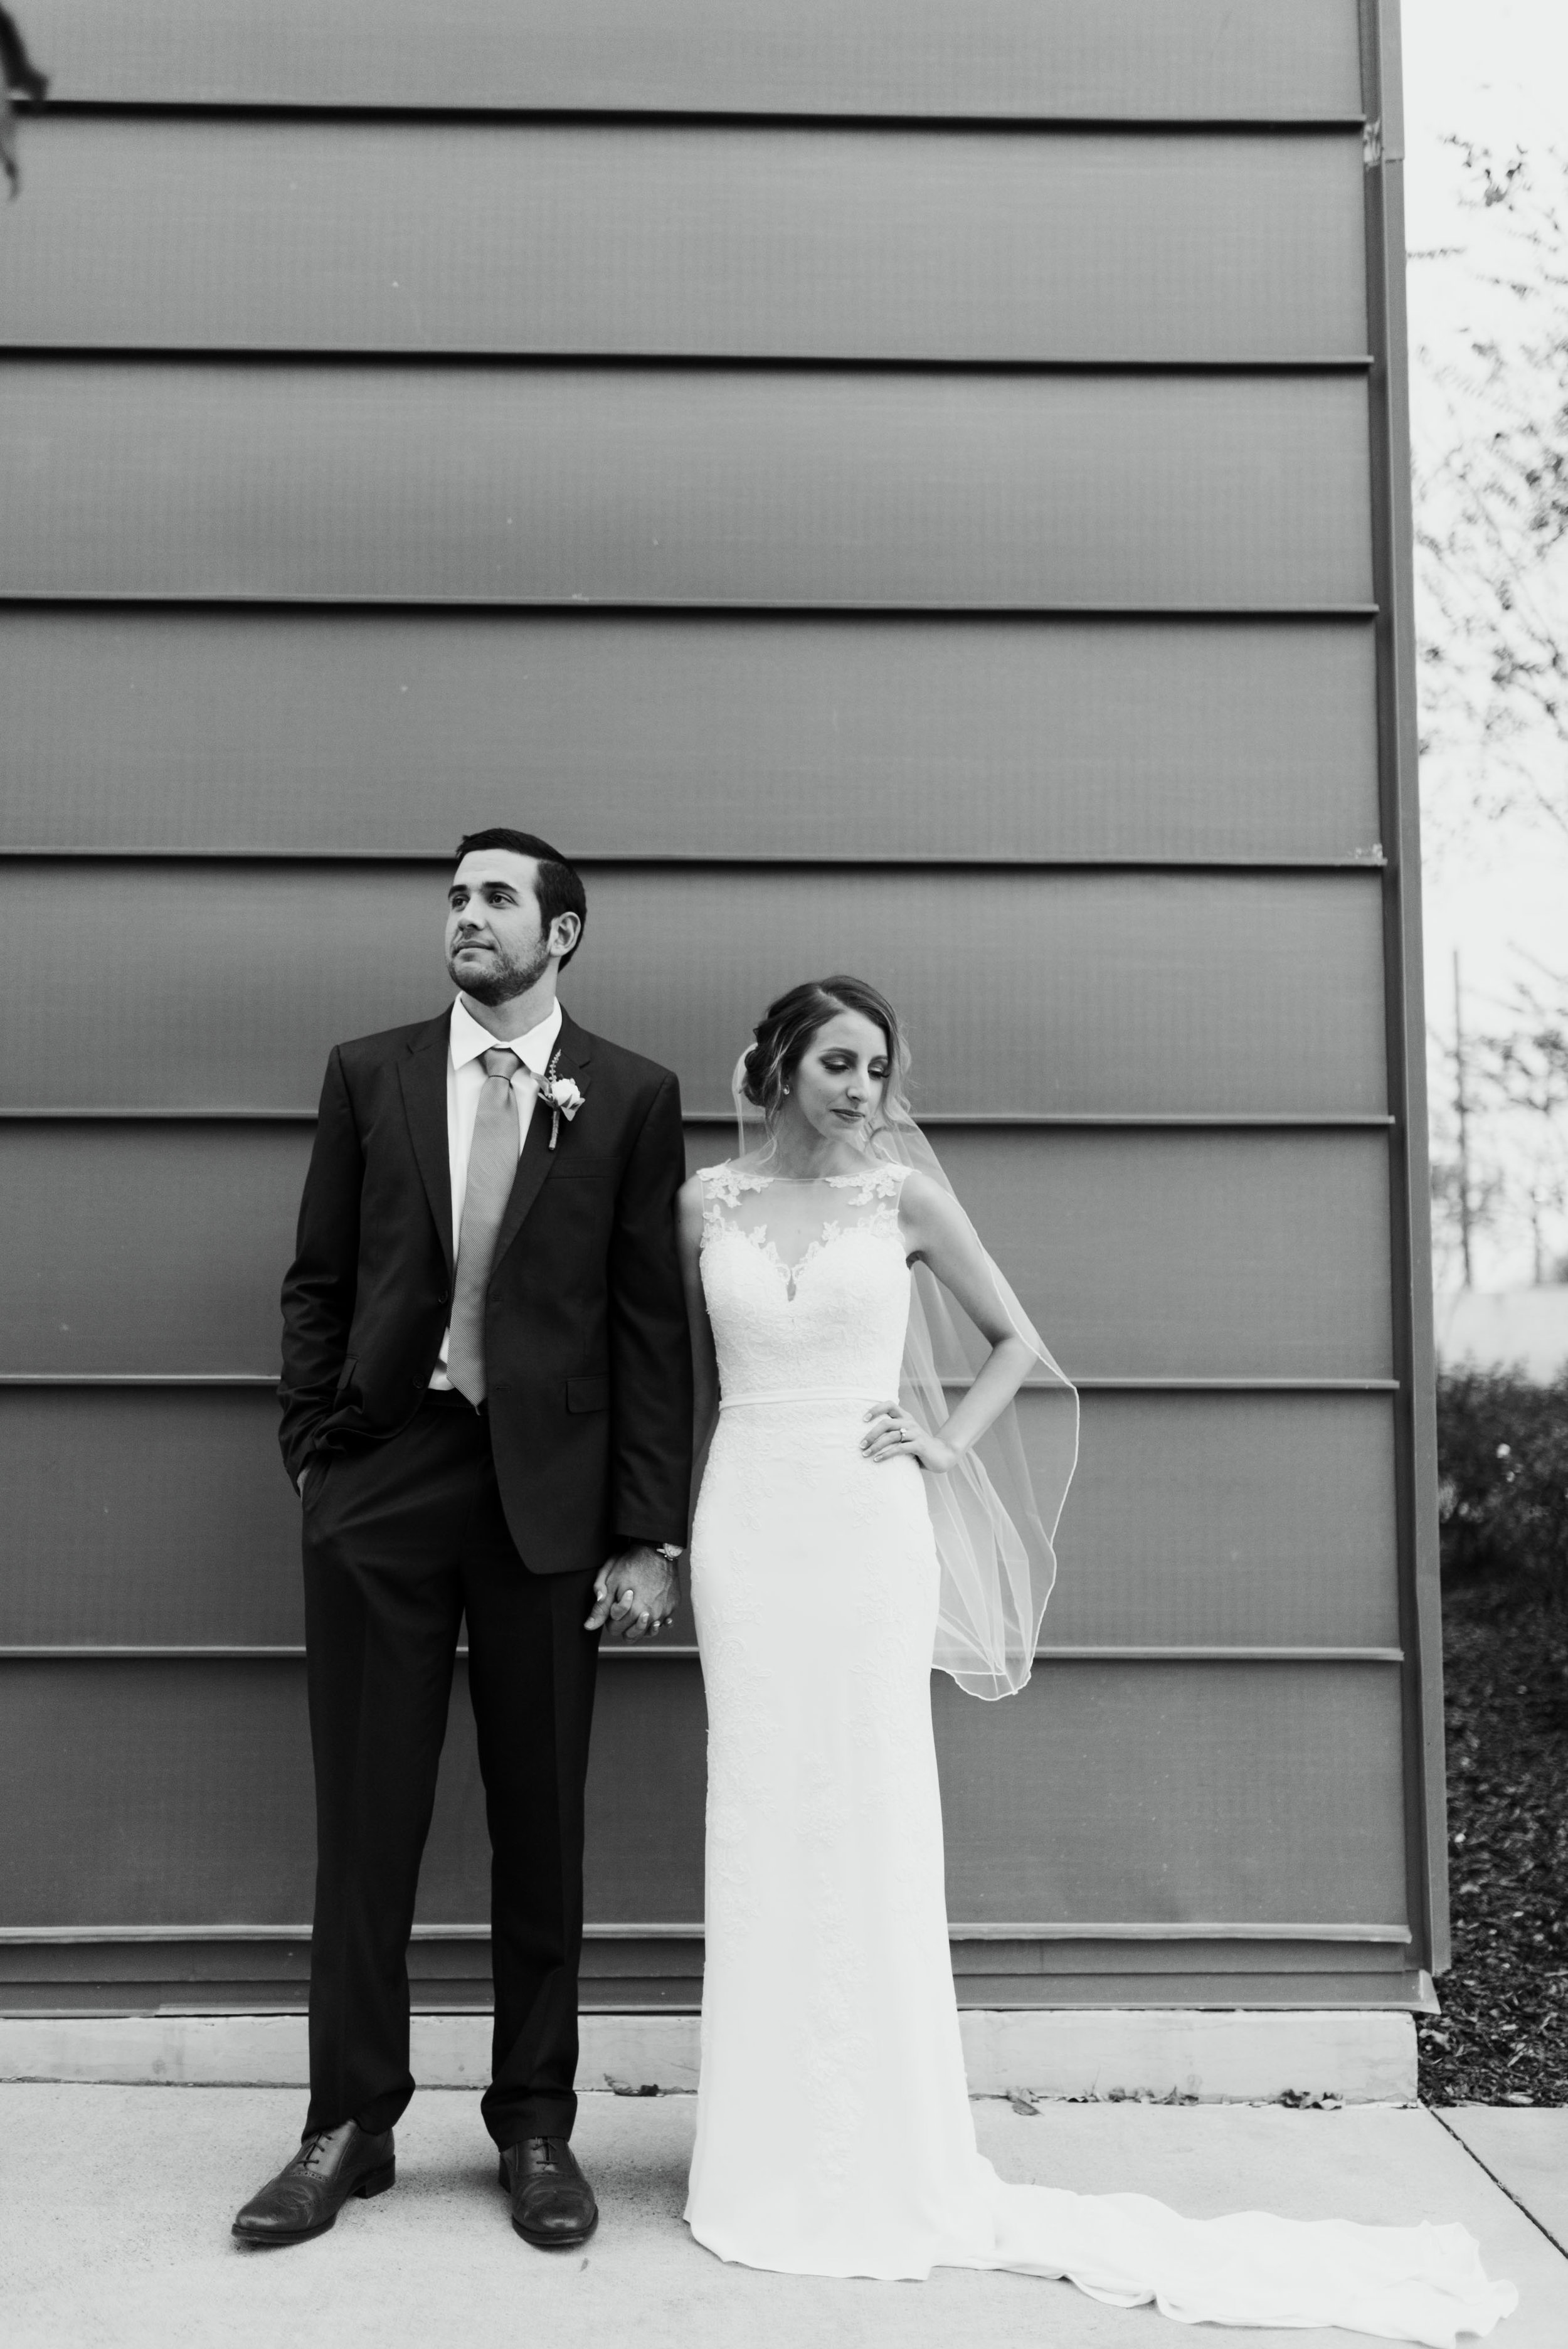 weddings - 2018 wedding packages includea minimum of 8 hours of wedding coverageonline galleryprint releasewith additional products available!-starting at $1,750